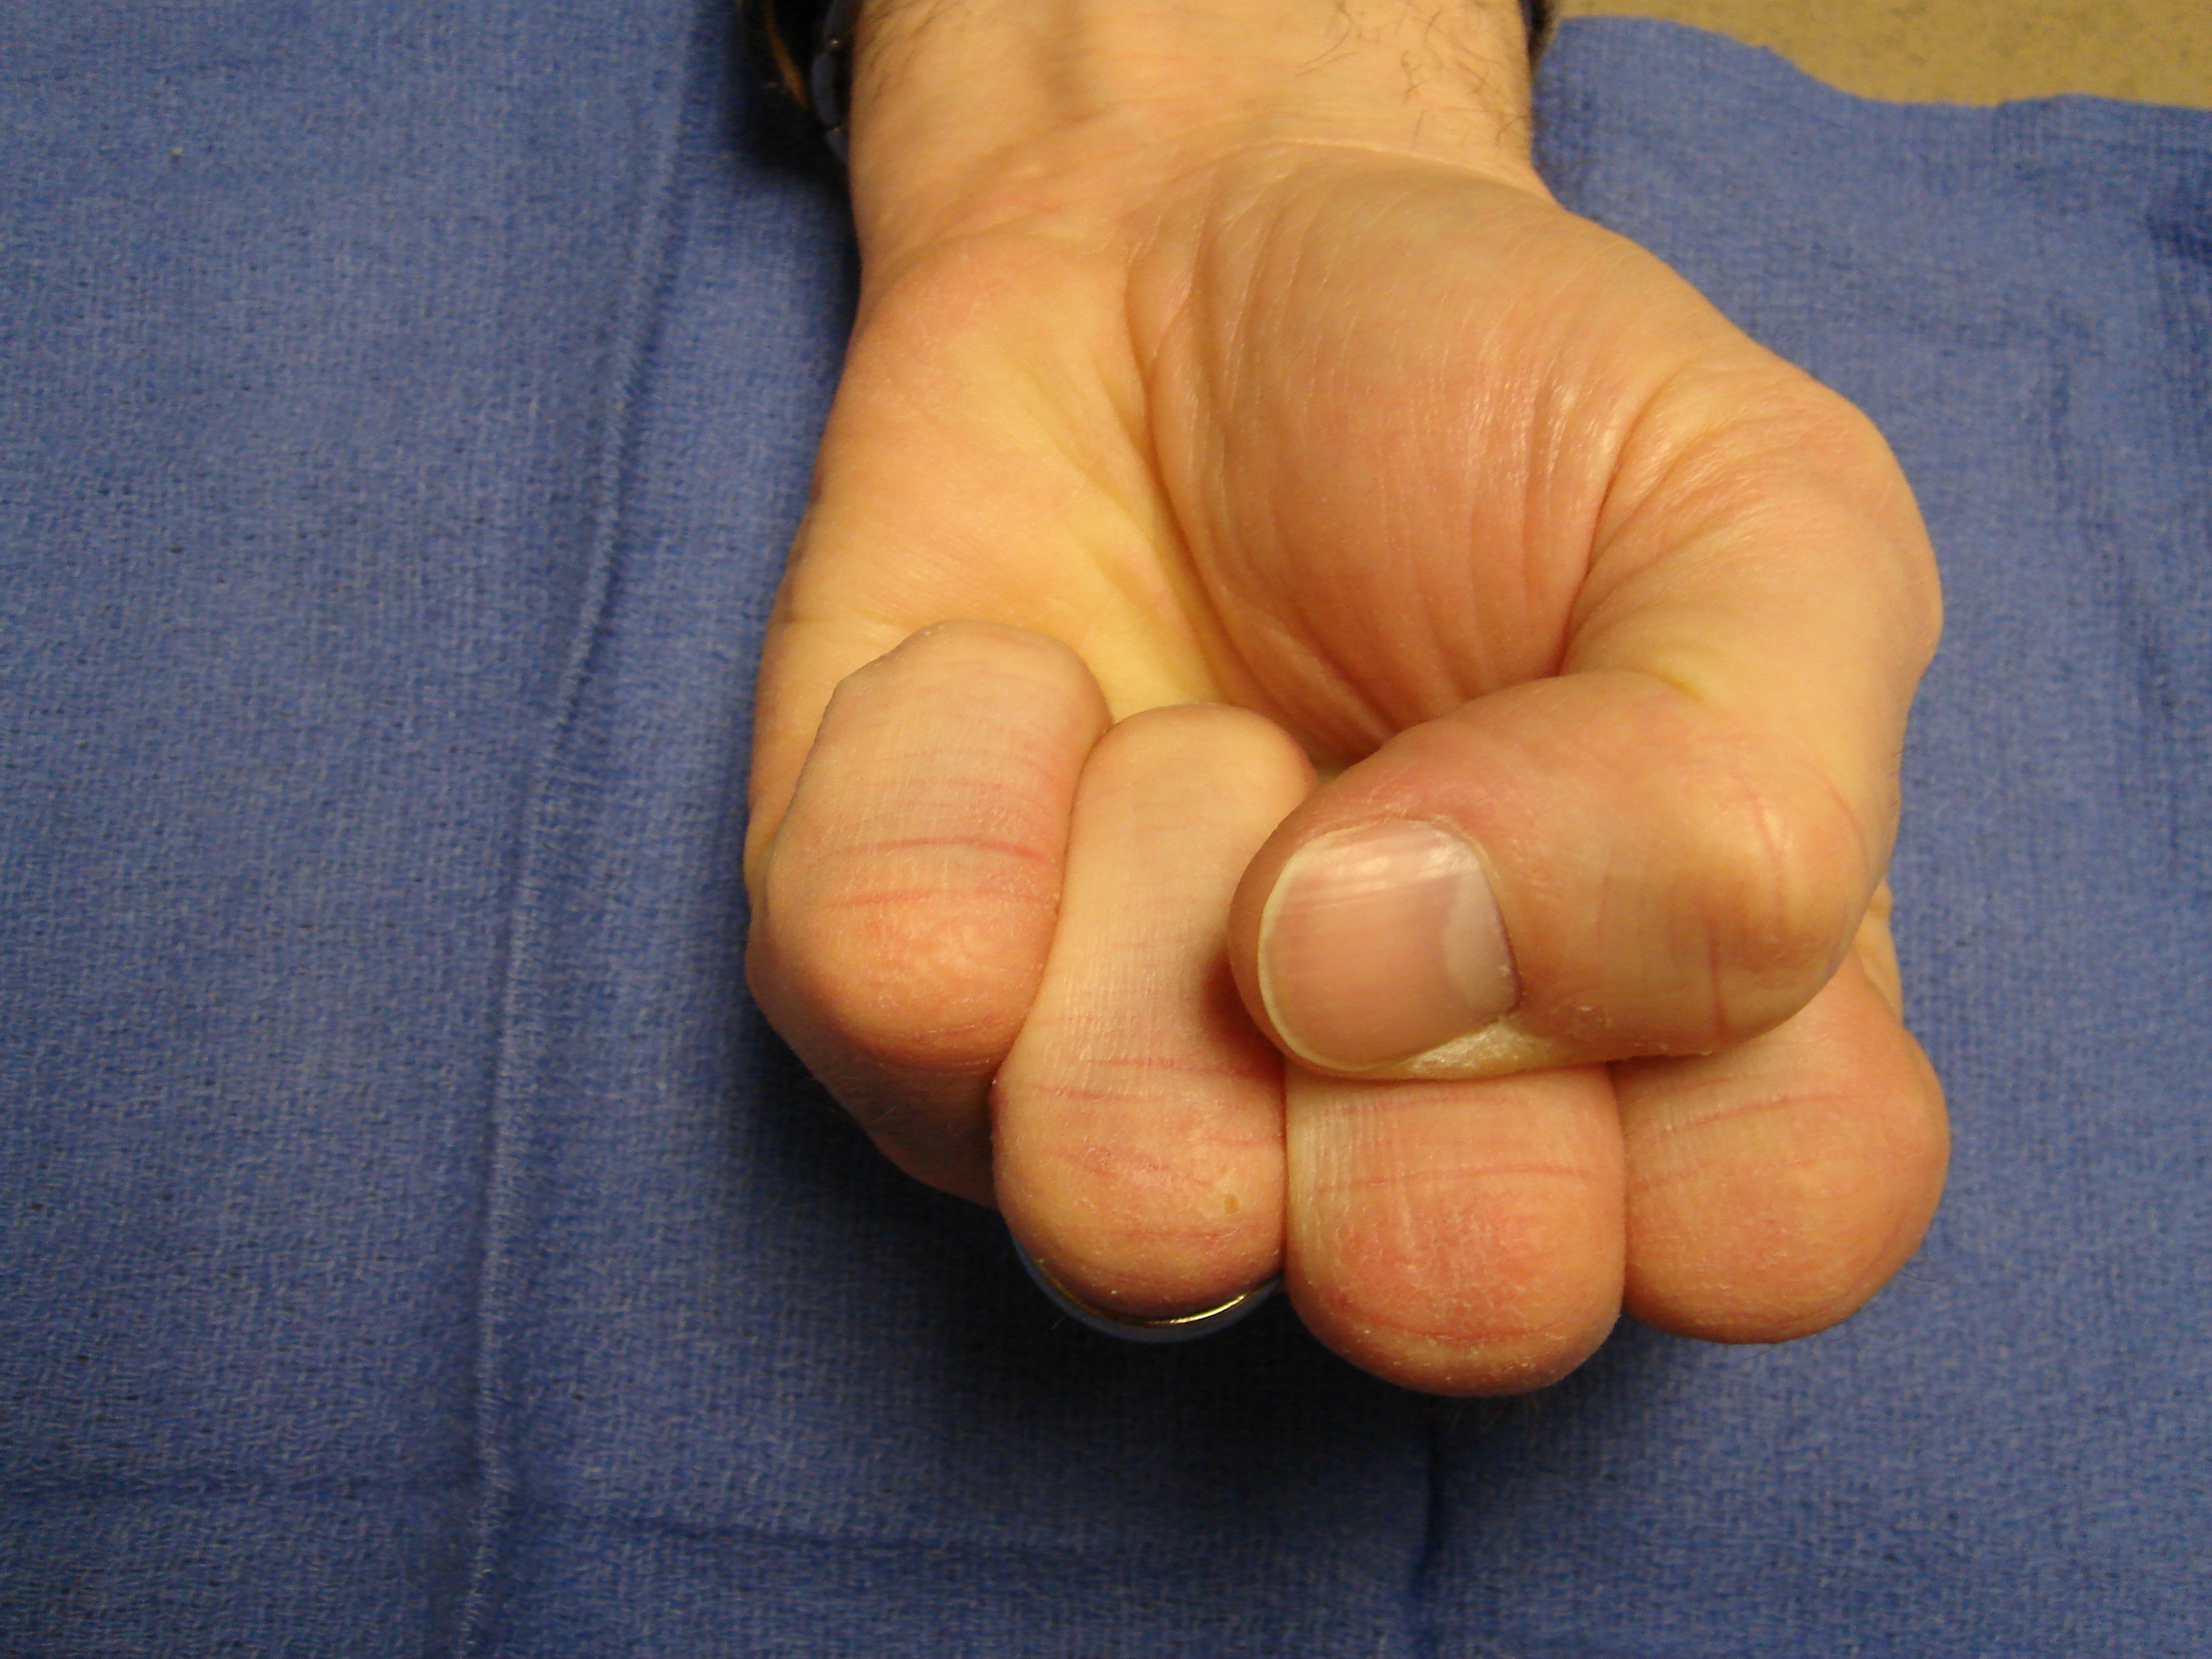 Figure 3e: Six months after collagenase treatment the patient maintains full active motion. A proximal phalangeal fascial nodule is seen slightly enlarged from pre-treatment; but there is yet no new contracture.